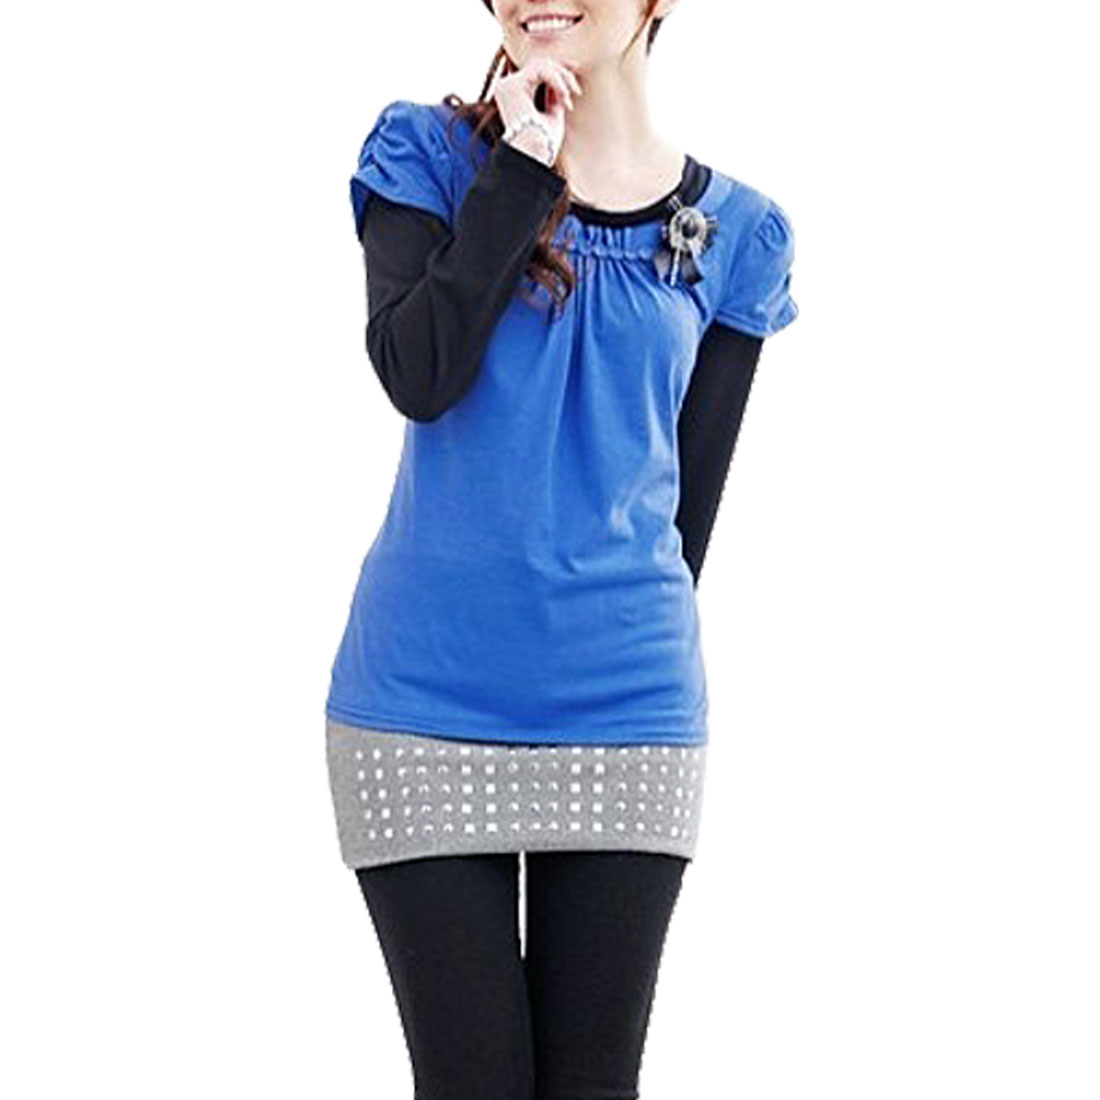 Autumn Blue Black Scoop Neck Layered Shirts Shirt XS for Women